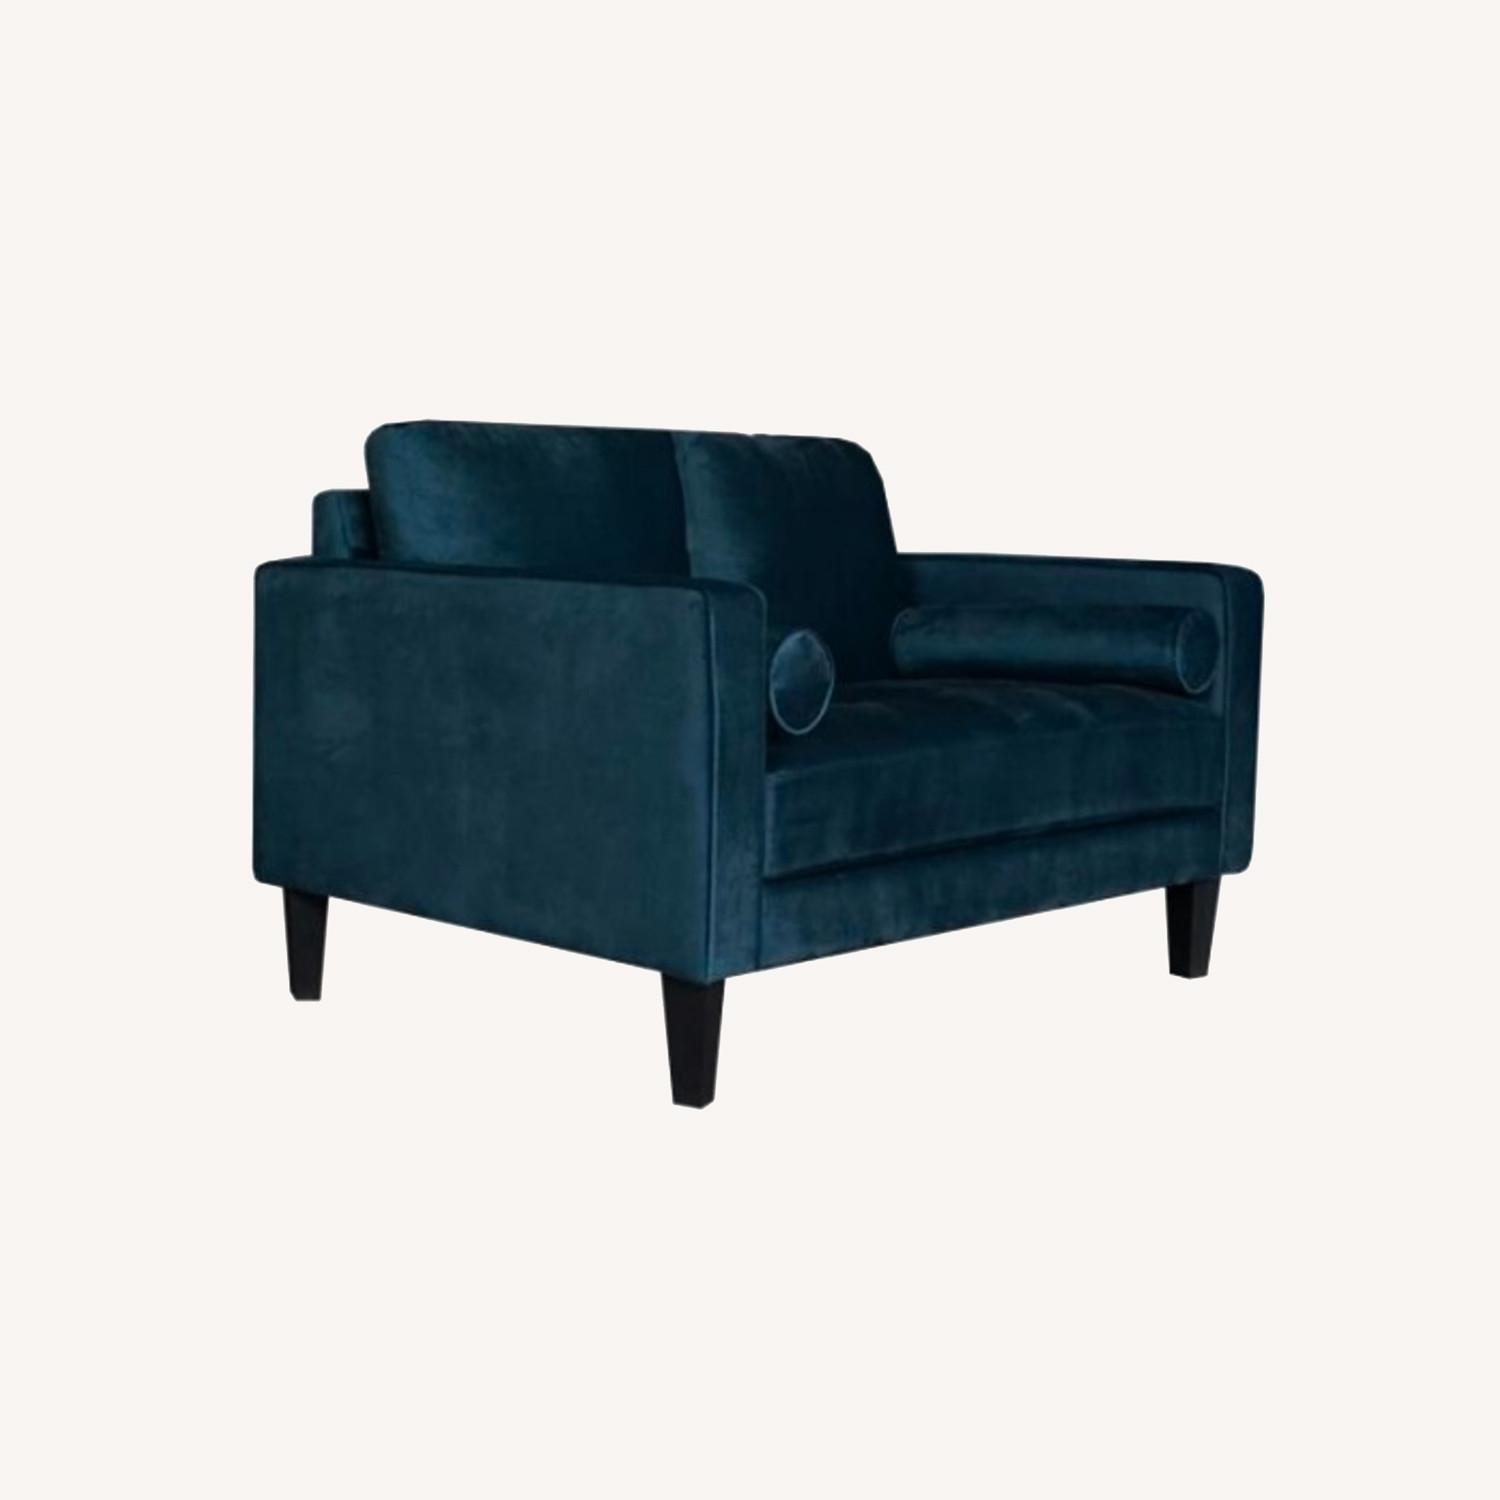 Loveseat In Dark Teal Finish W/ Tall Tapered Legs - image-4